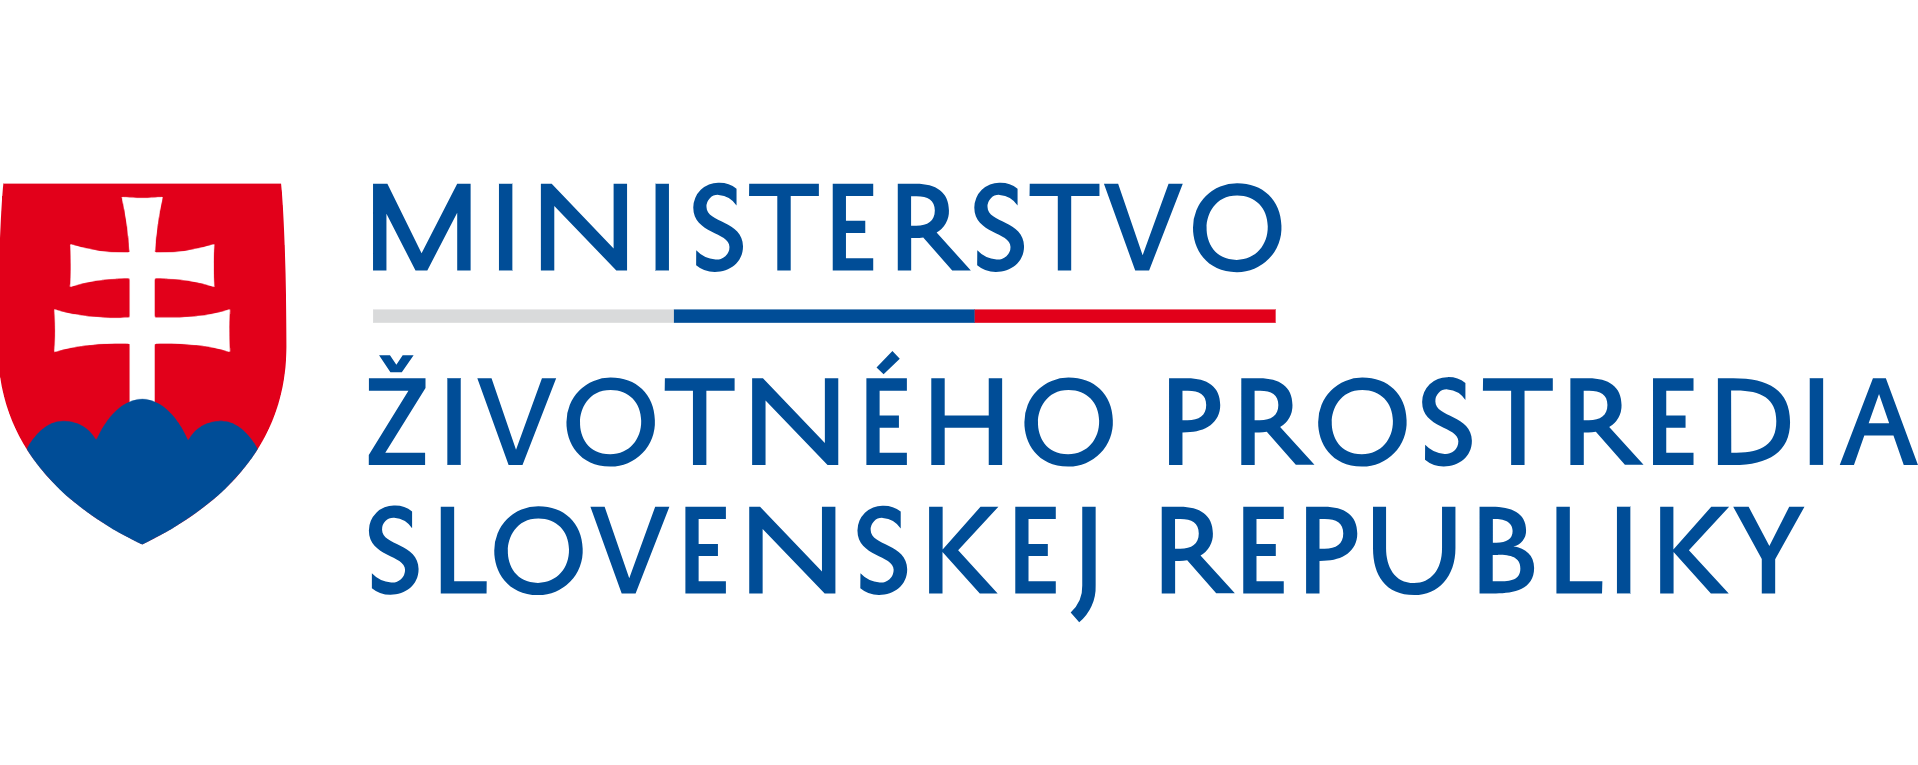 Ministry of the Environment SLOVAKIA